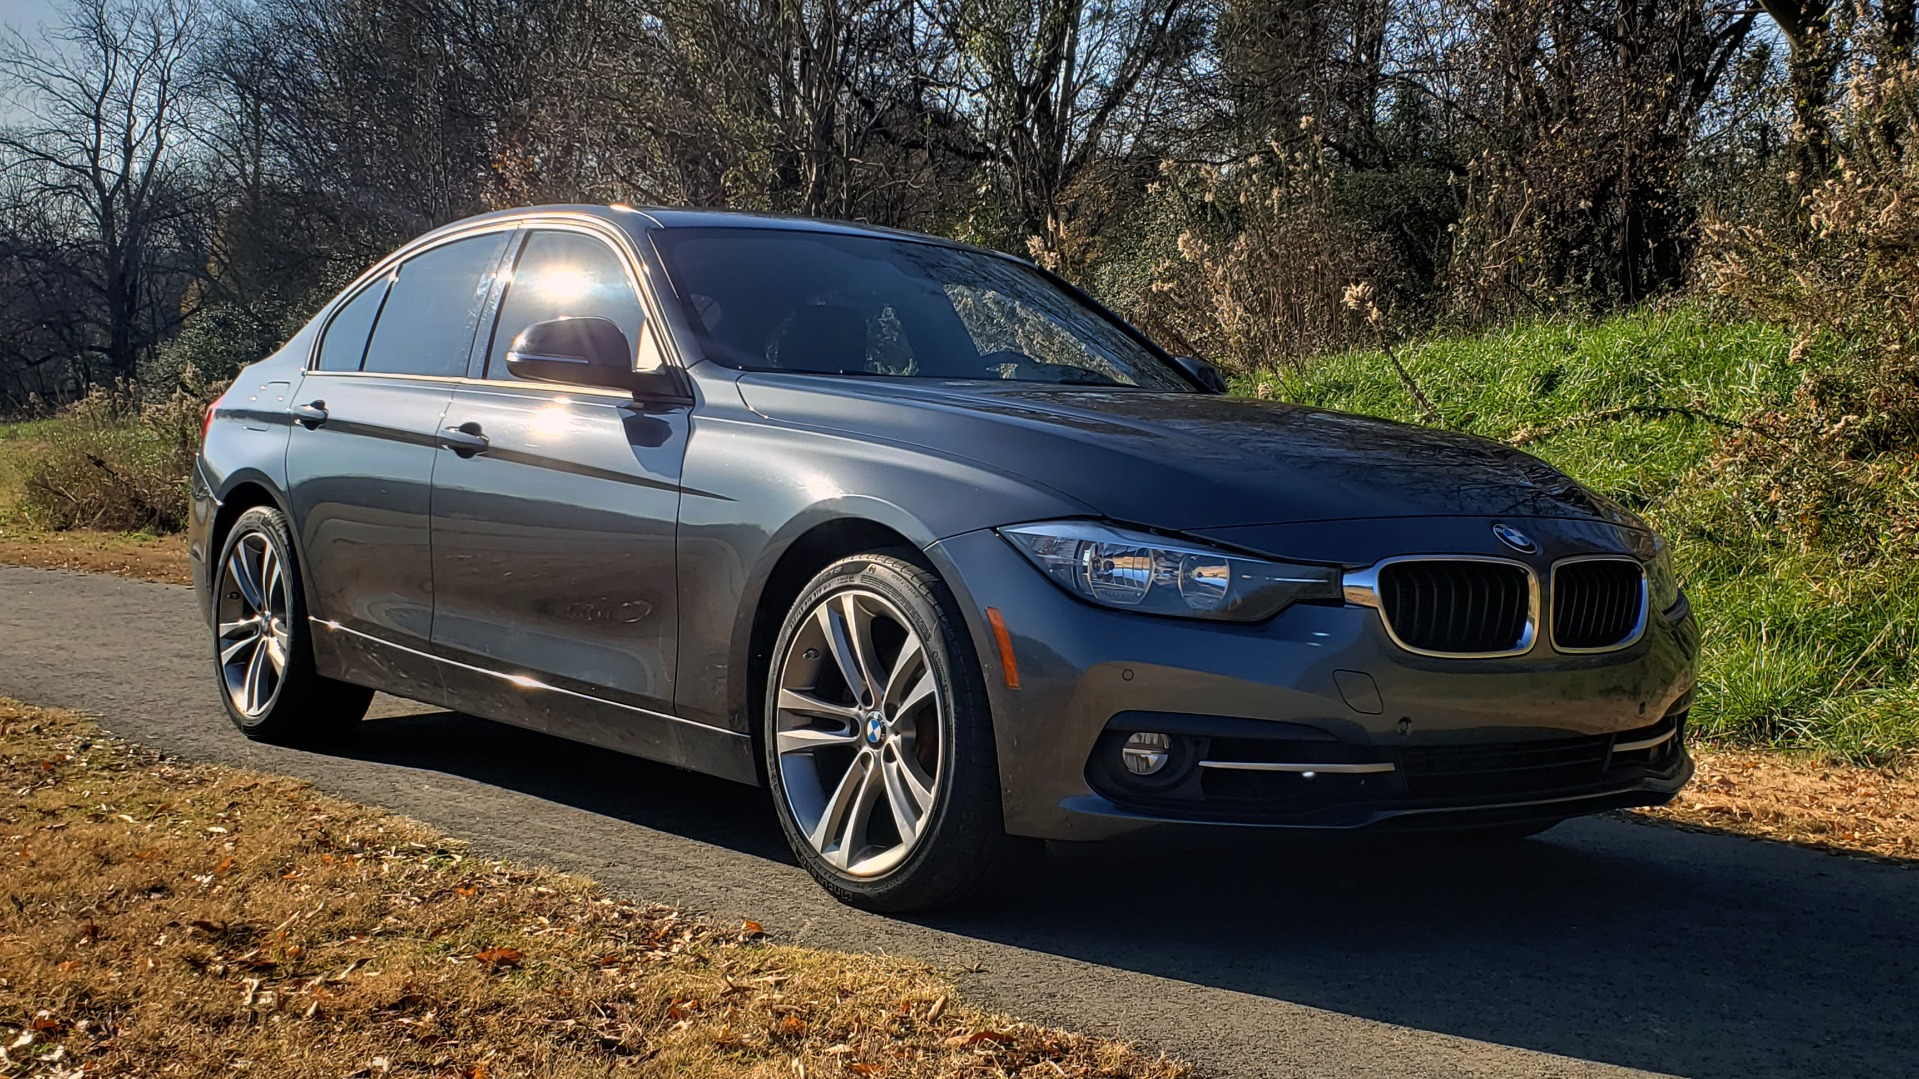 Used 2016 BMW 3 SERIES 328I / DRVR ASST / SUNROOF / PARK DIST CNTRL / REARVIEW for sale Sold at Formula Imports in Charlotte NC 28227 5